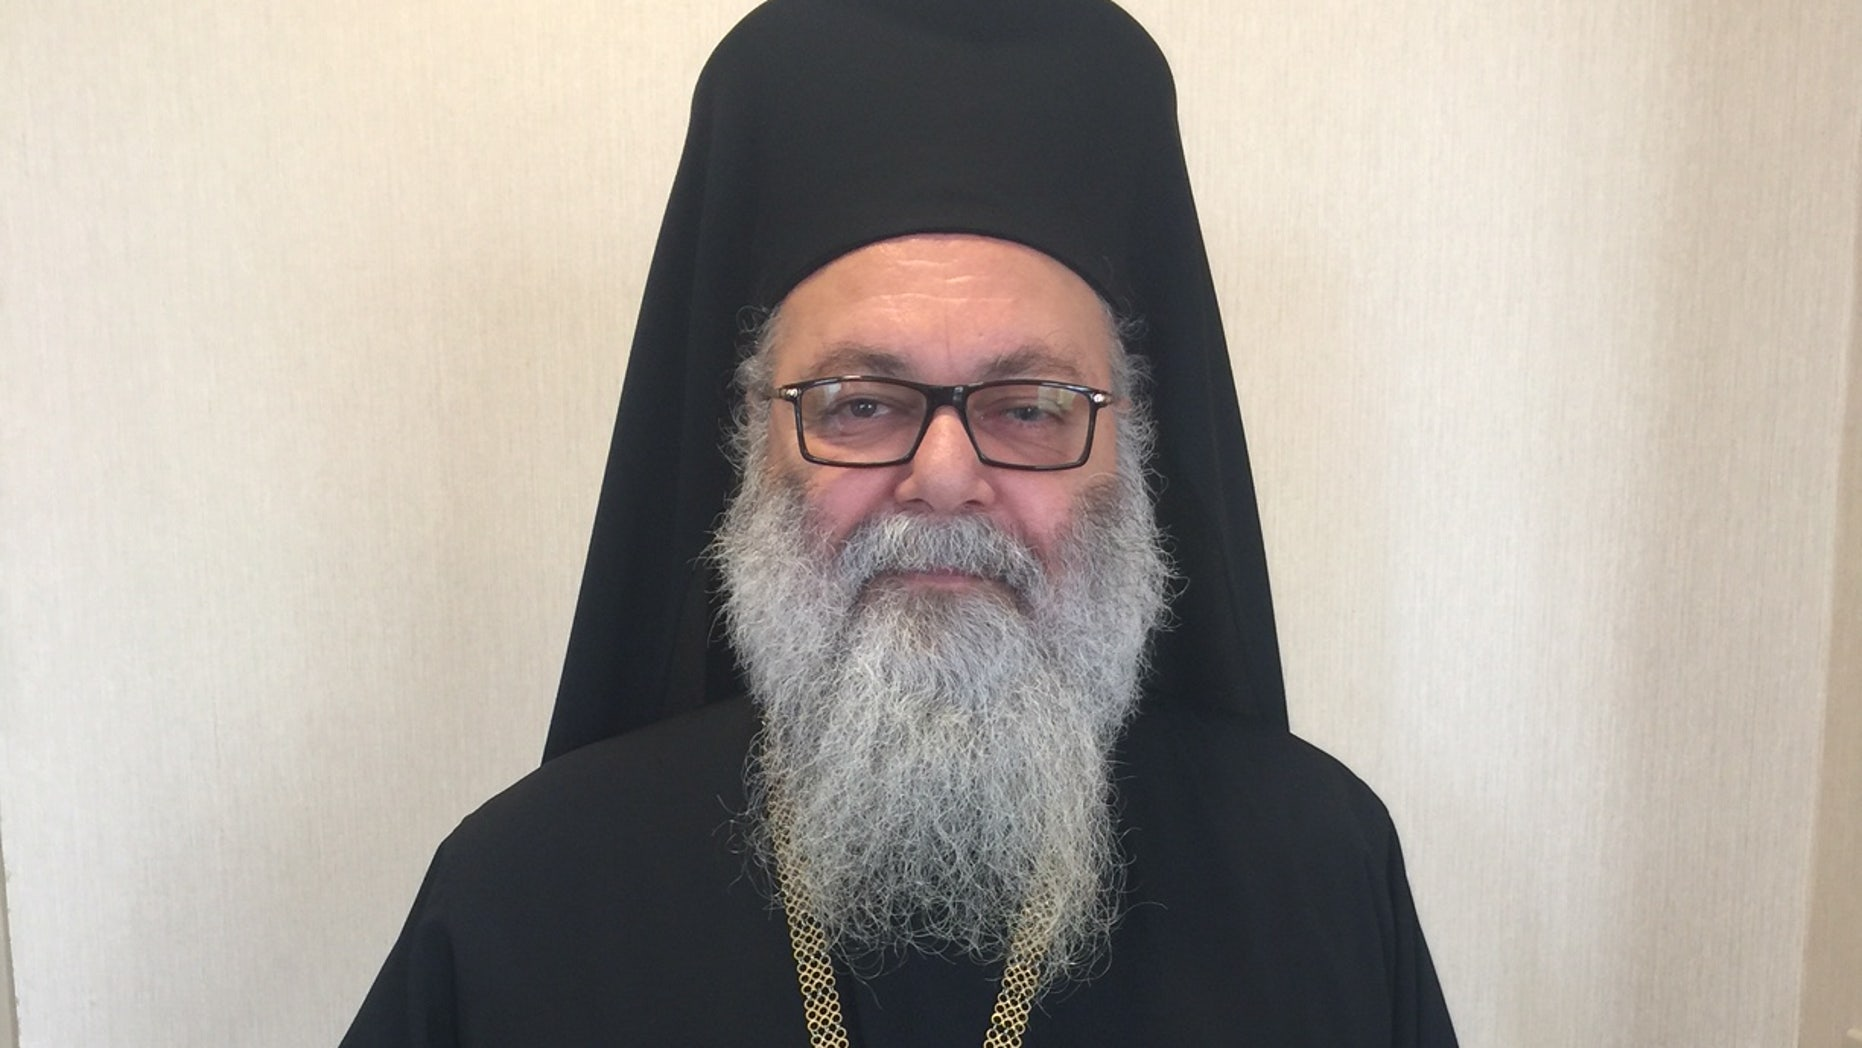 His Beatitude John X, the Damascus-based leader of the Antioch Christian Church